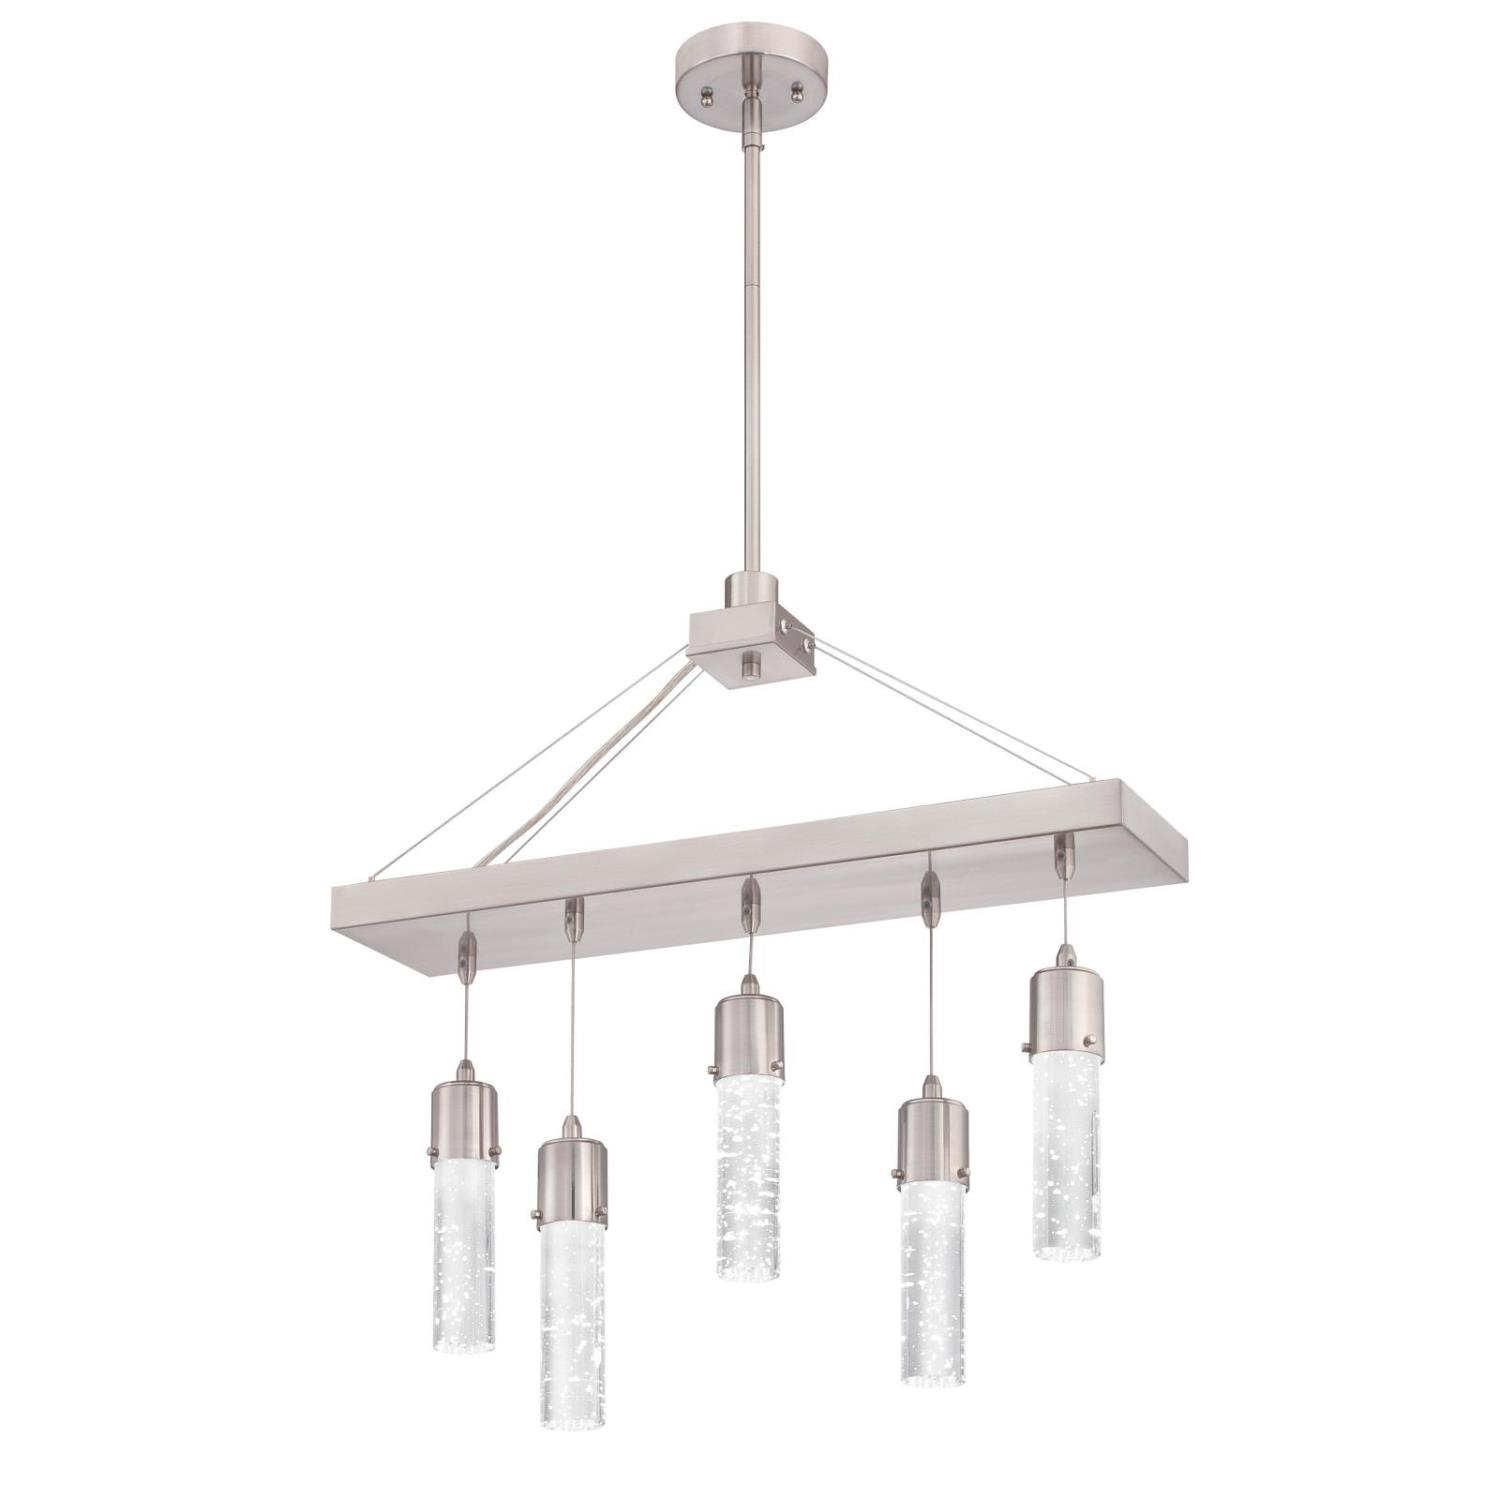 5 Light LED Chandelier Brushed Nickel Finish with Bubble Glass